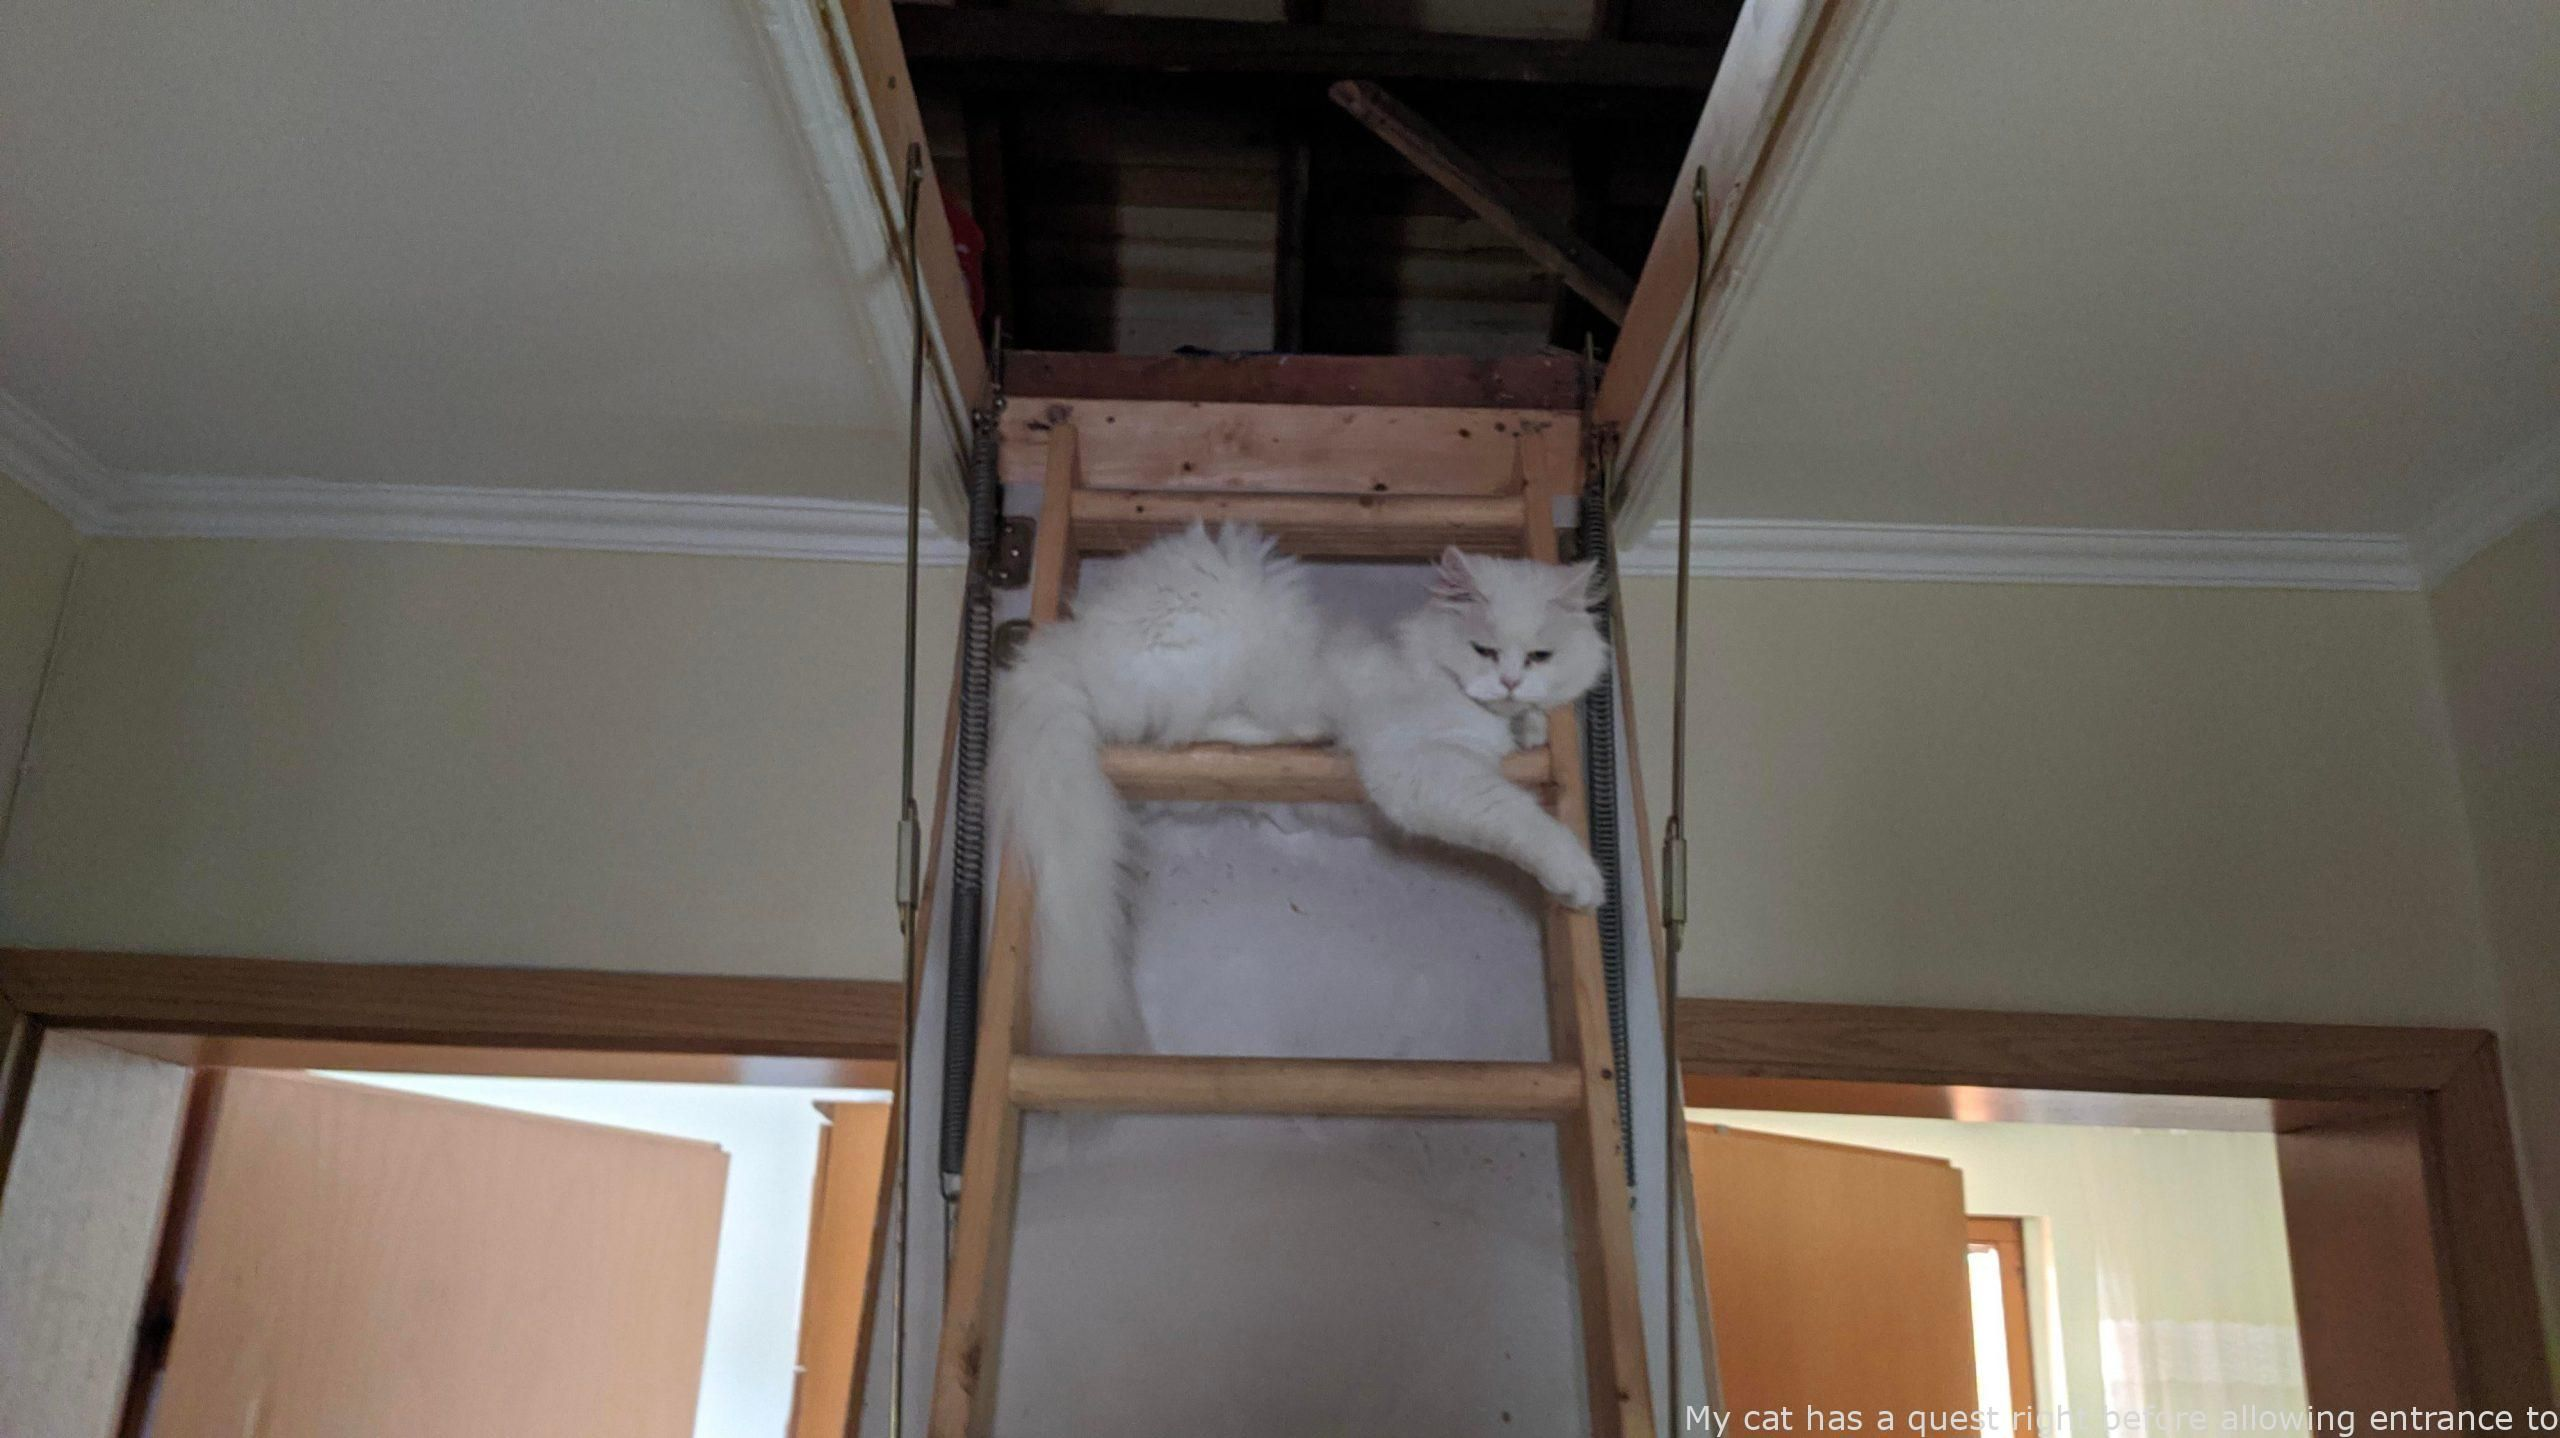 Animals My Cat Has A Quest Right Before Allowing Entrance To The Attic Last In 2020 Beauty Animals Cute Animal Memes Cuddly Animals